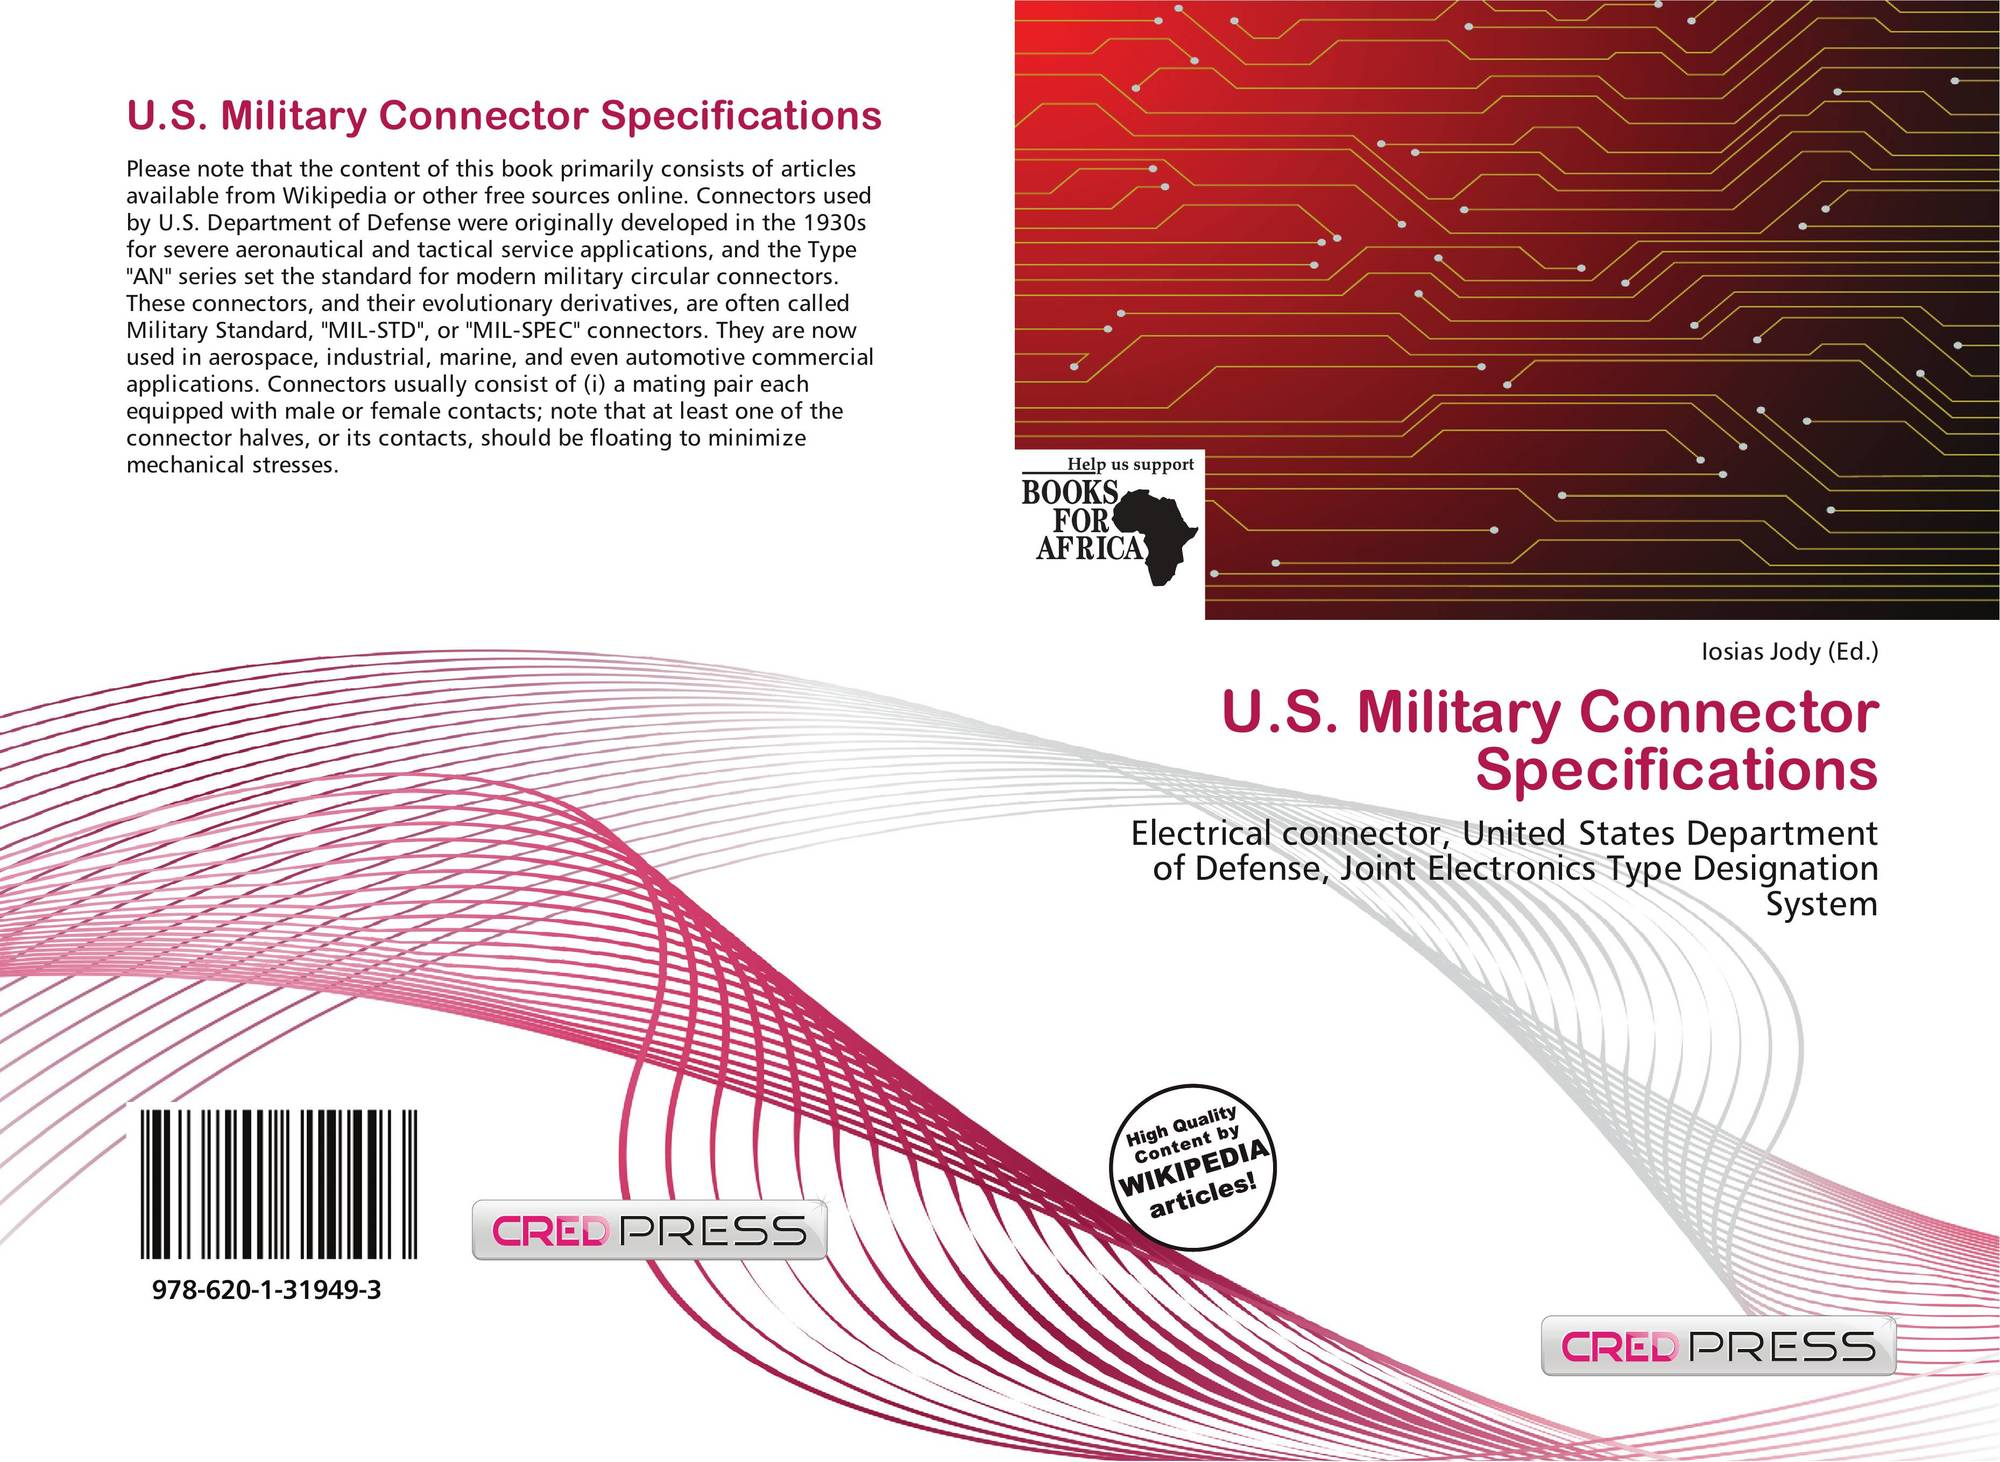 U S Military Connector Specifications 978 620 1 31949 3 6201319492 9786201319493